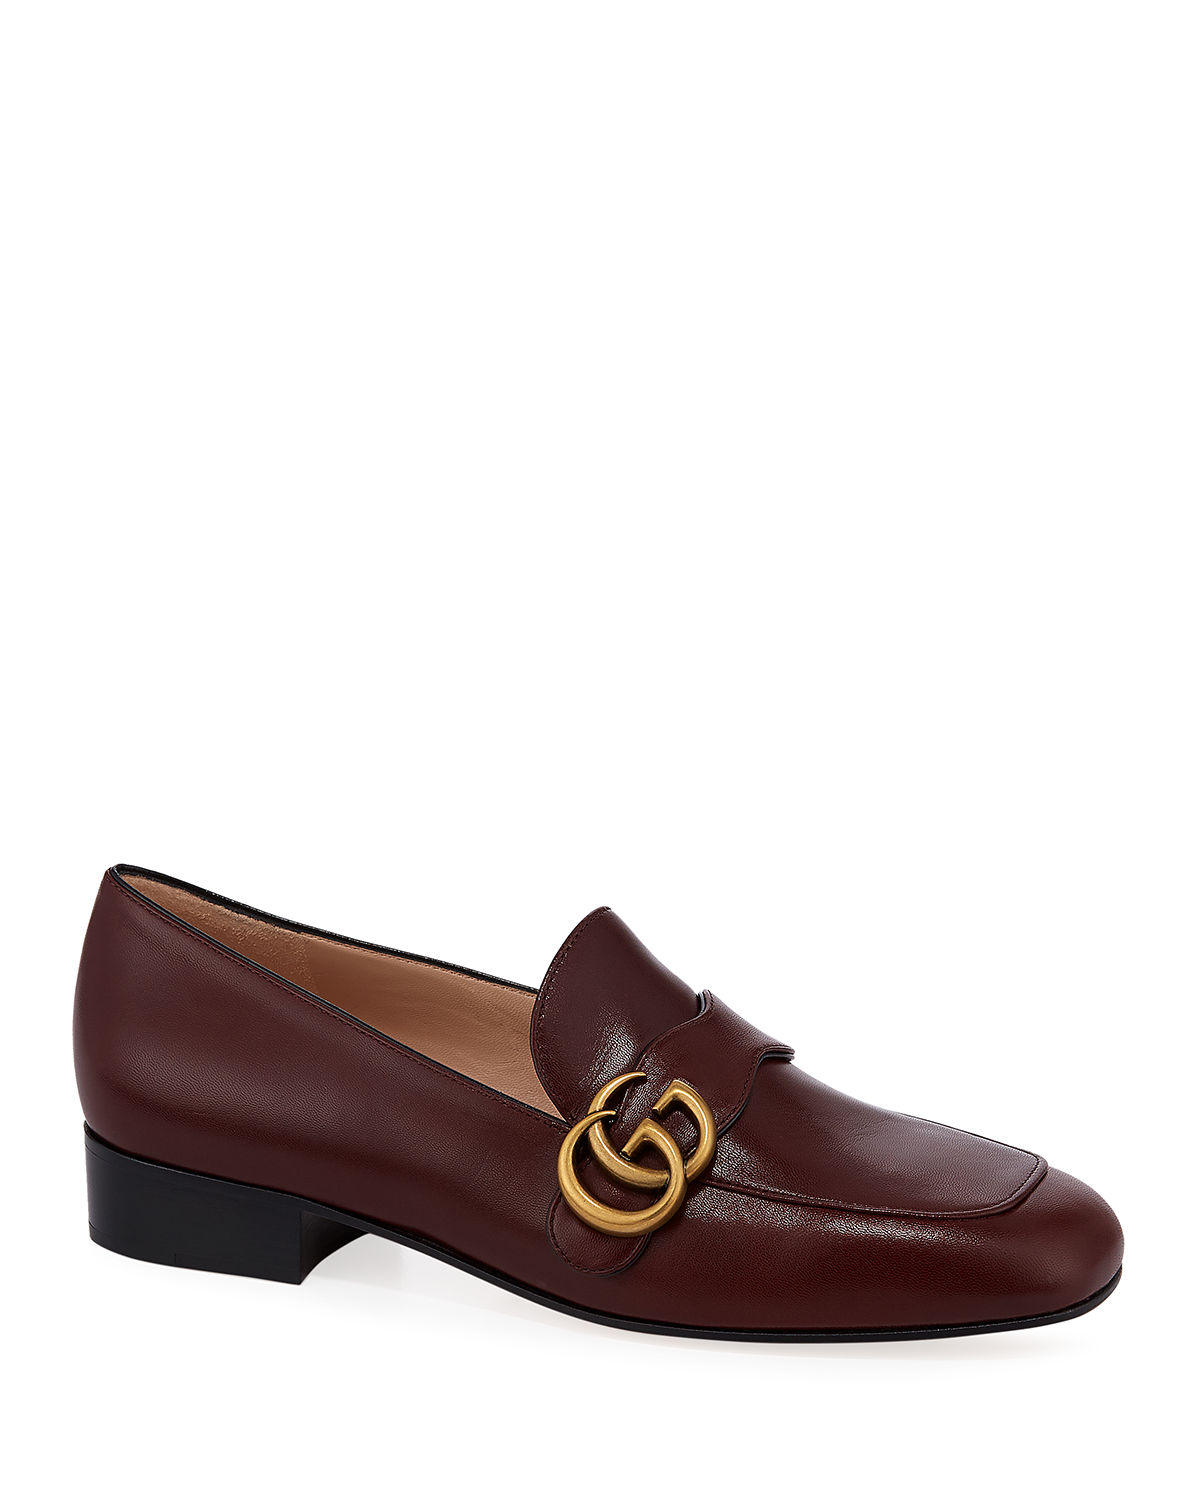 Gucci Loafers MARMONT 25MM LEATHER LOAFERS